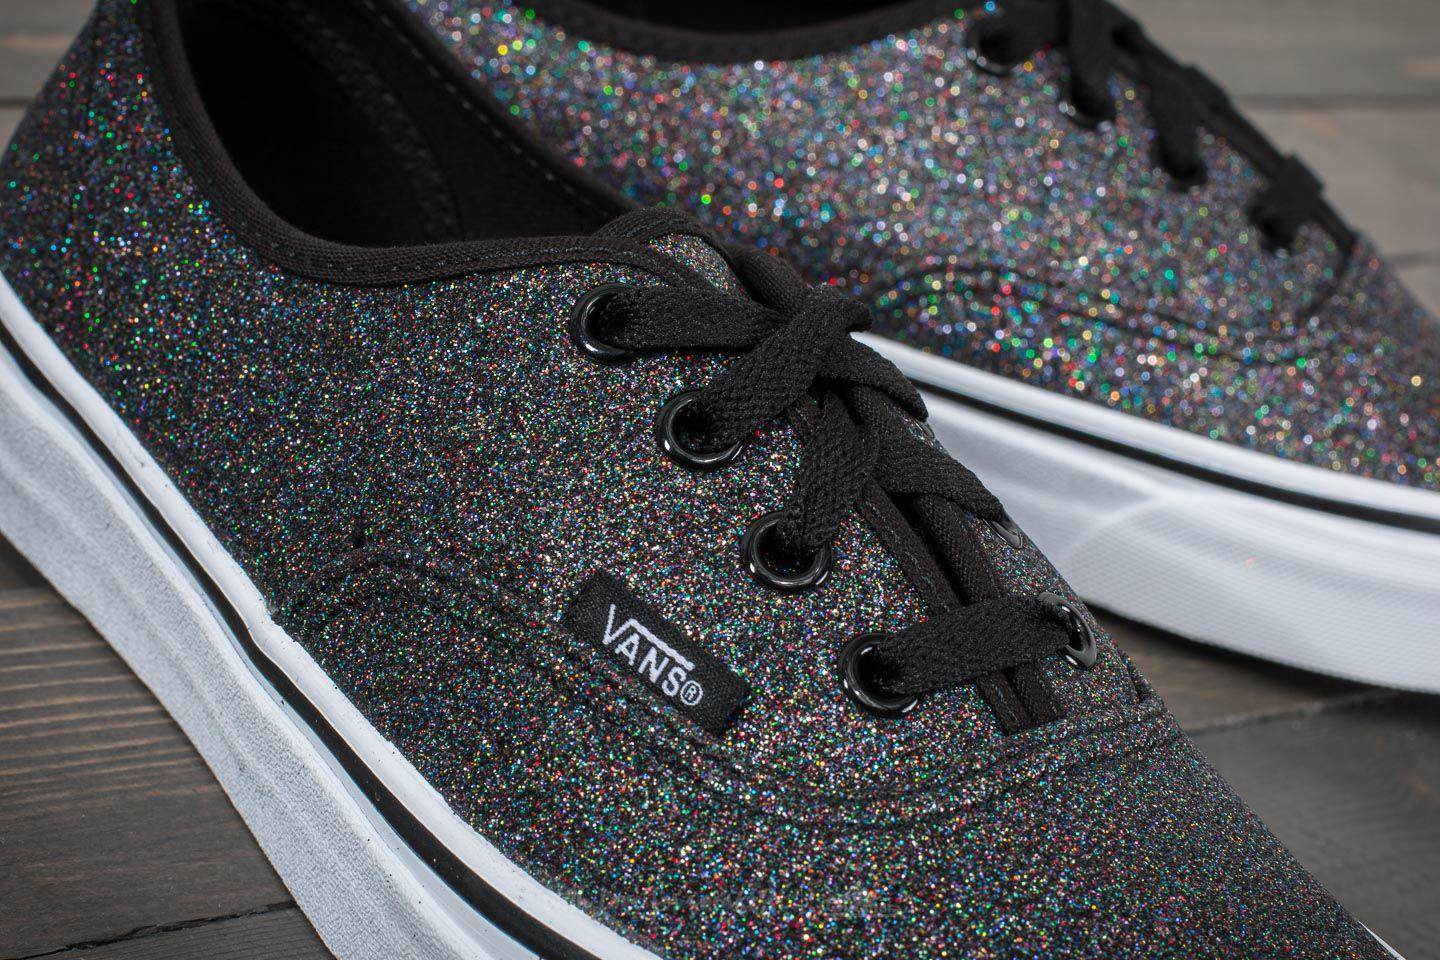 Lyst - Vans Authentic (glitter) Rainbow Black in Black for Men aa633e414